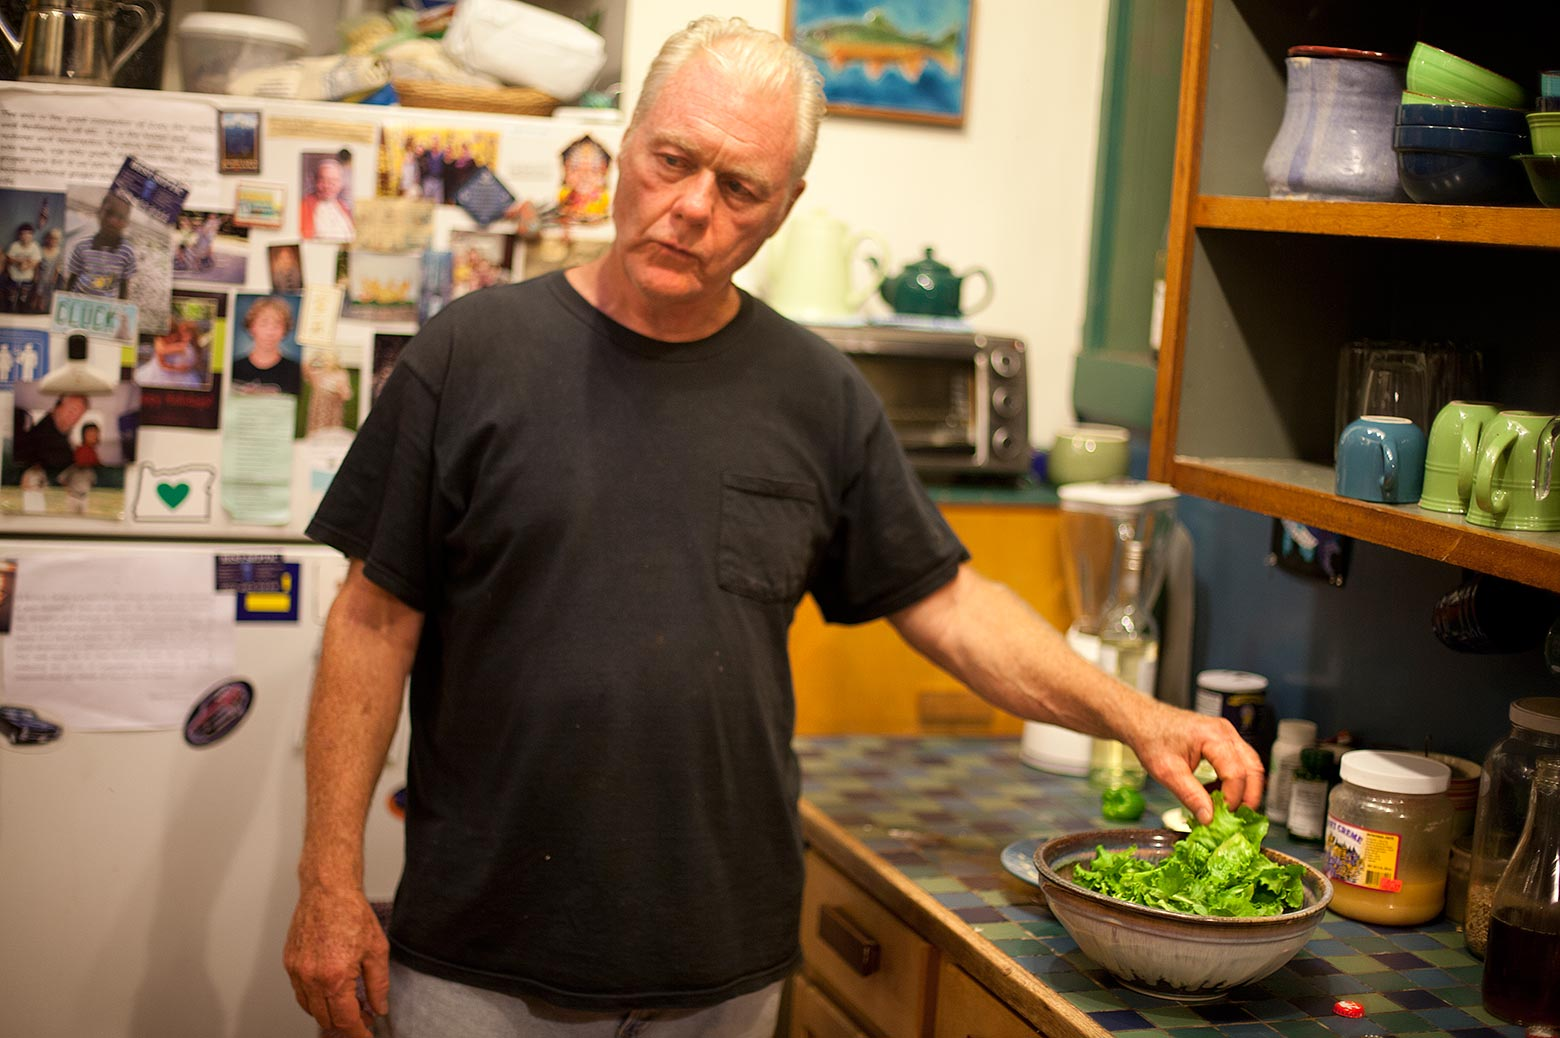 Man in kitchen making salad